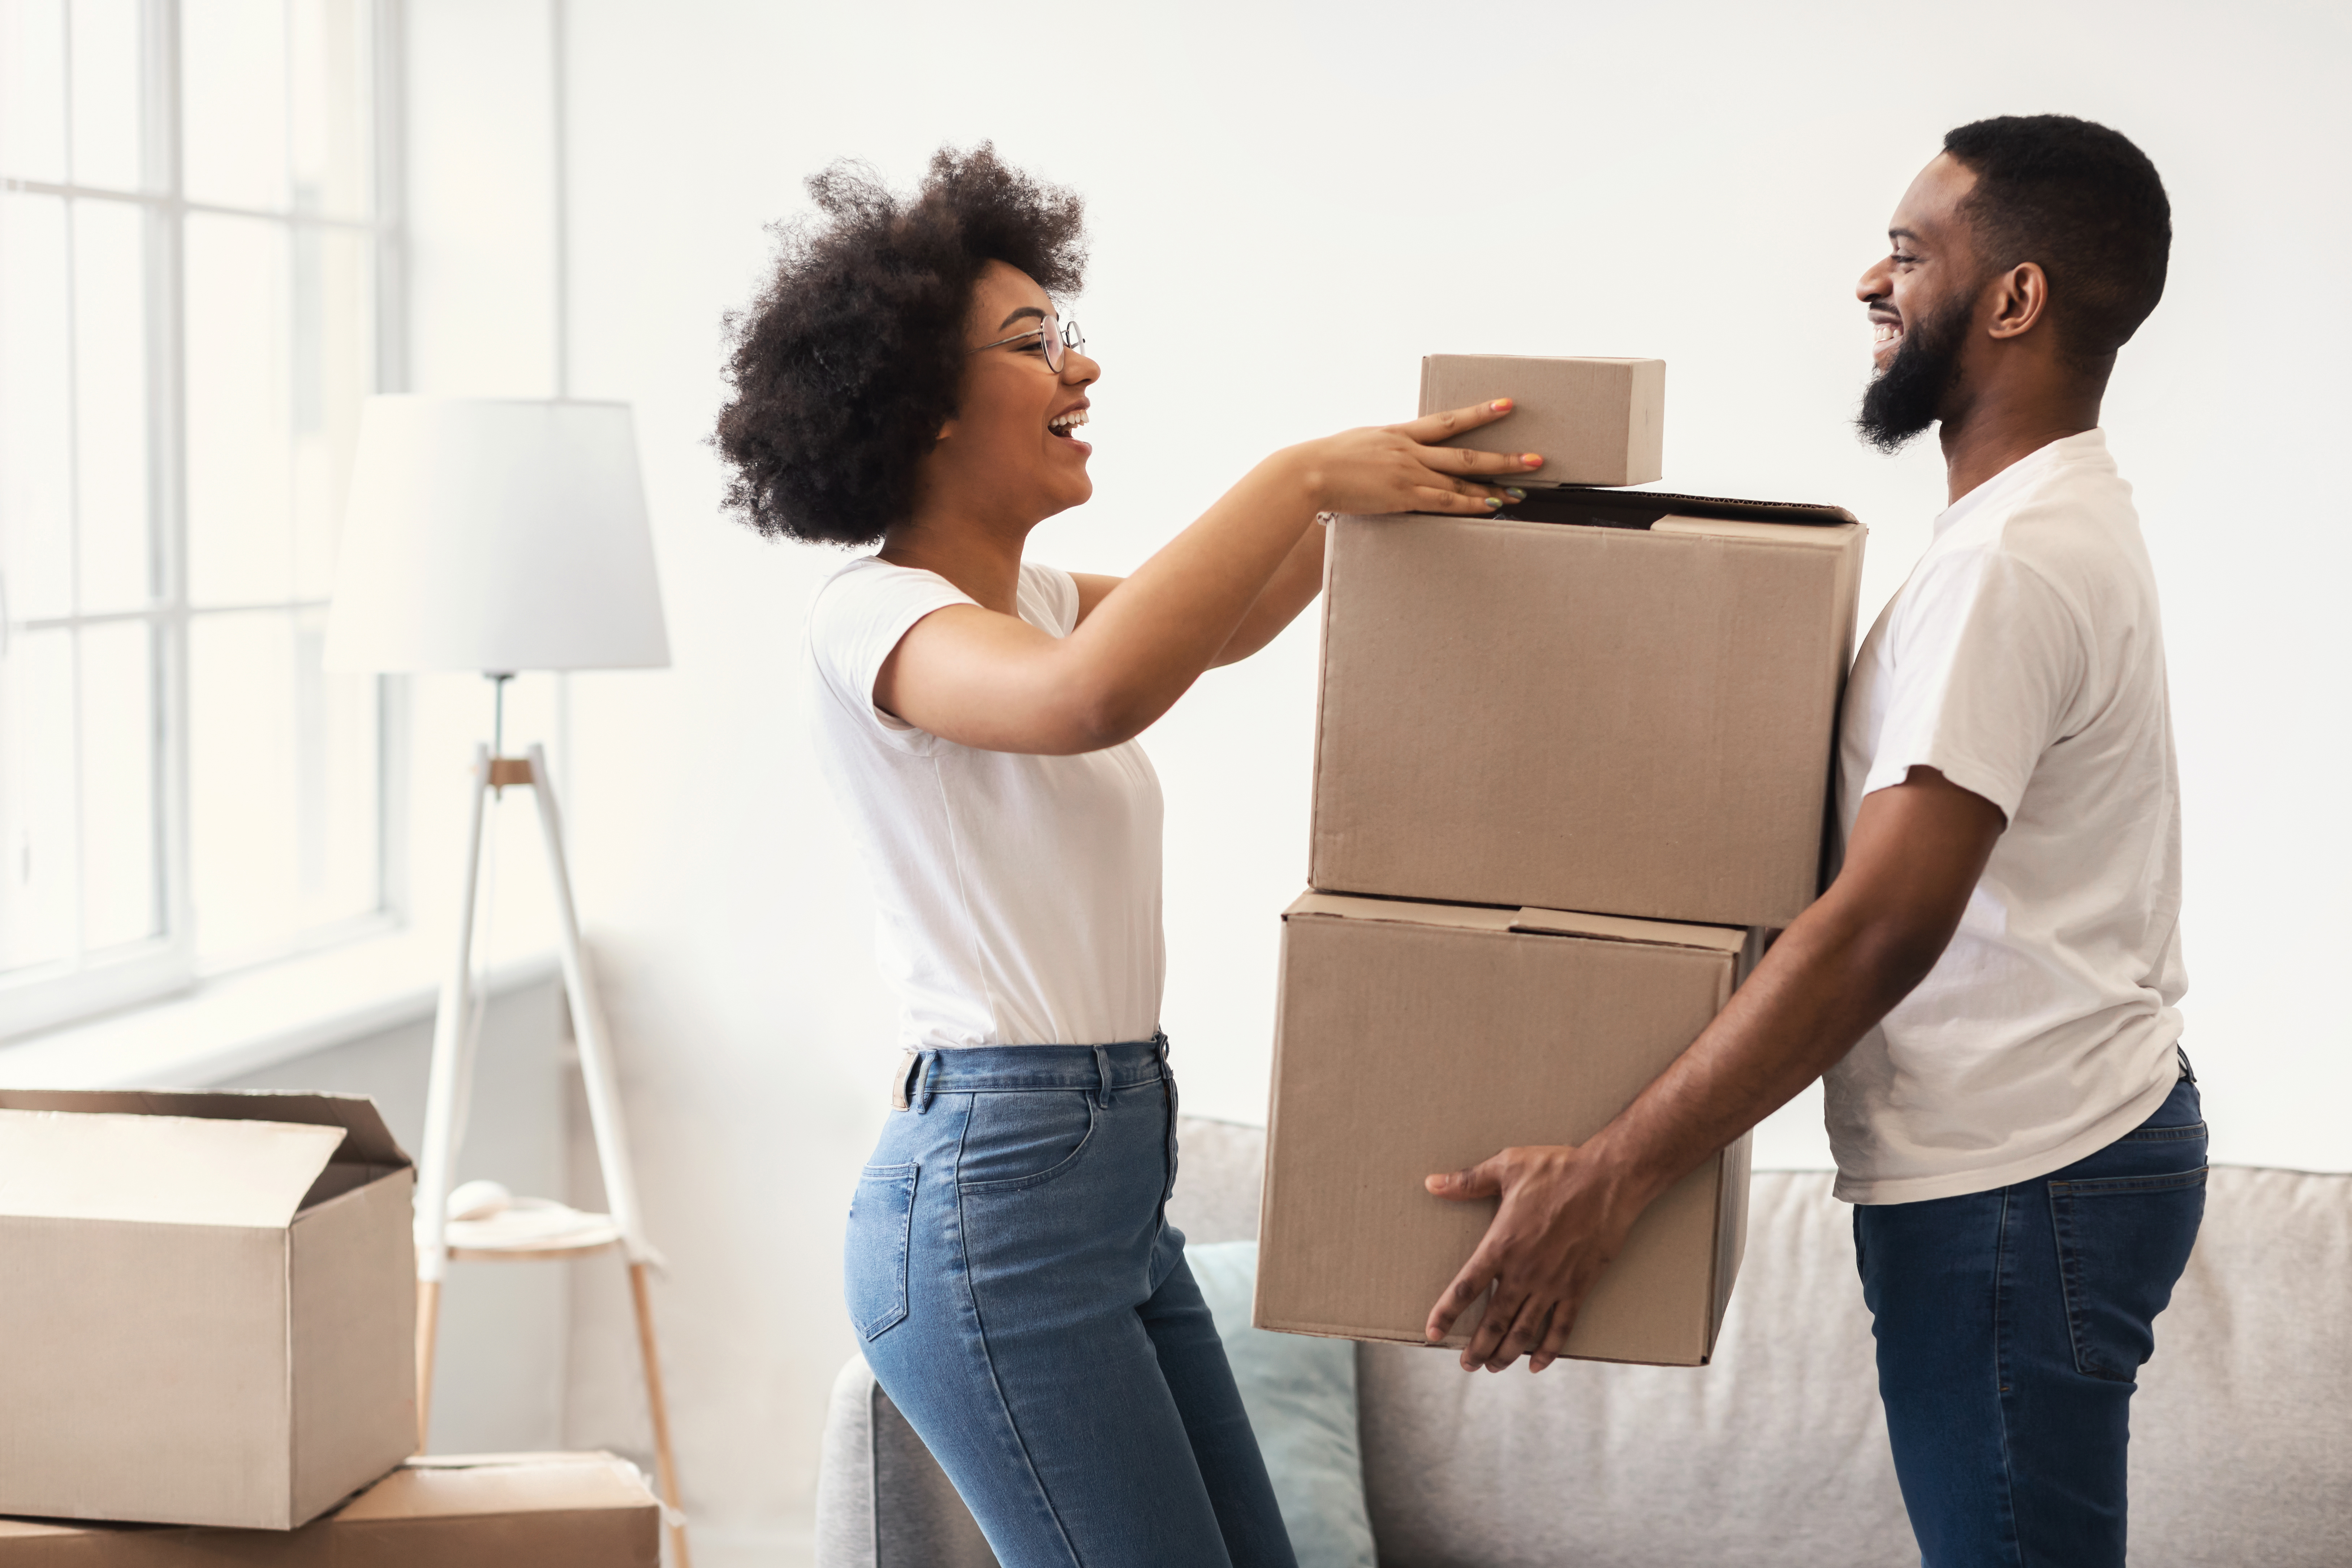 Happy Couple Packing Moving Boxes Together Standing Indoors